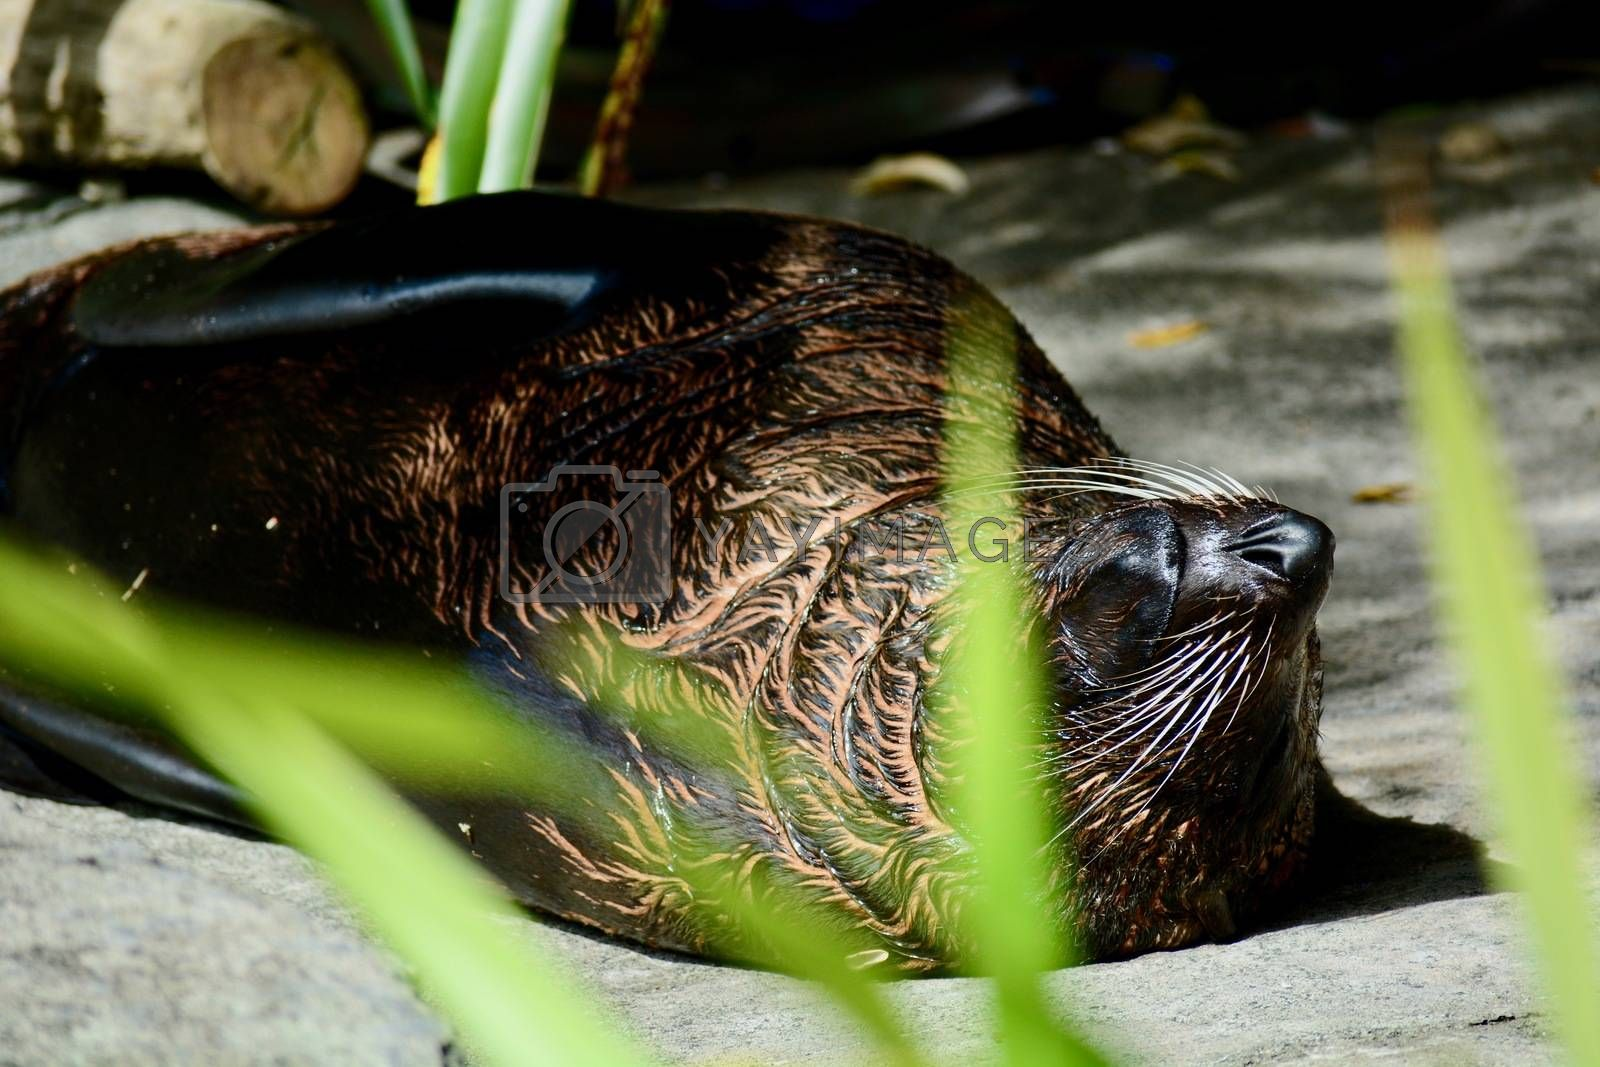 New Zealand sea lion is one of the rarest sea lion species in the world and are only found in New Zealand.